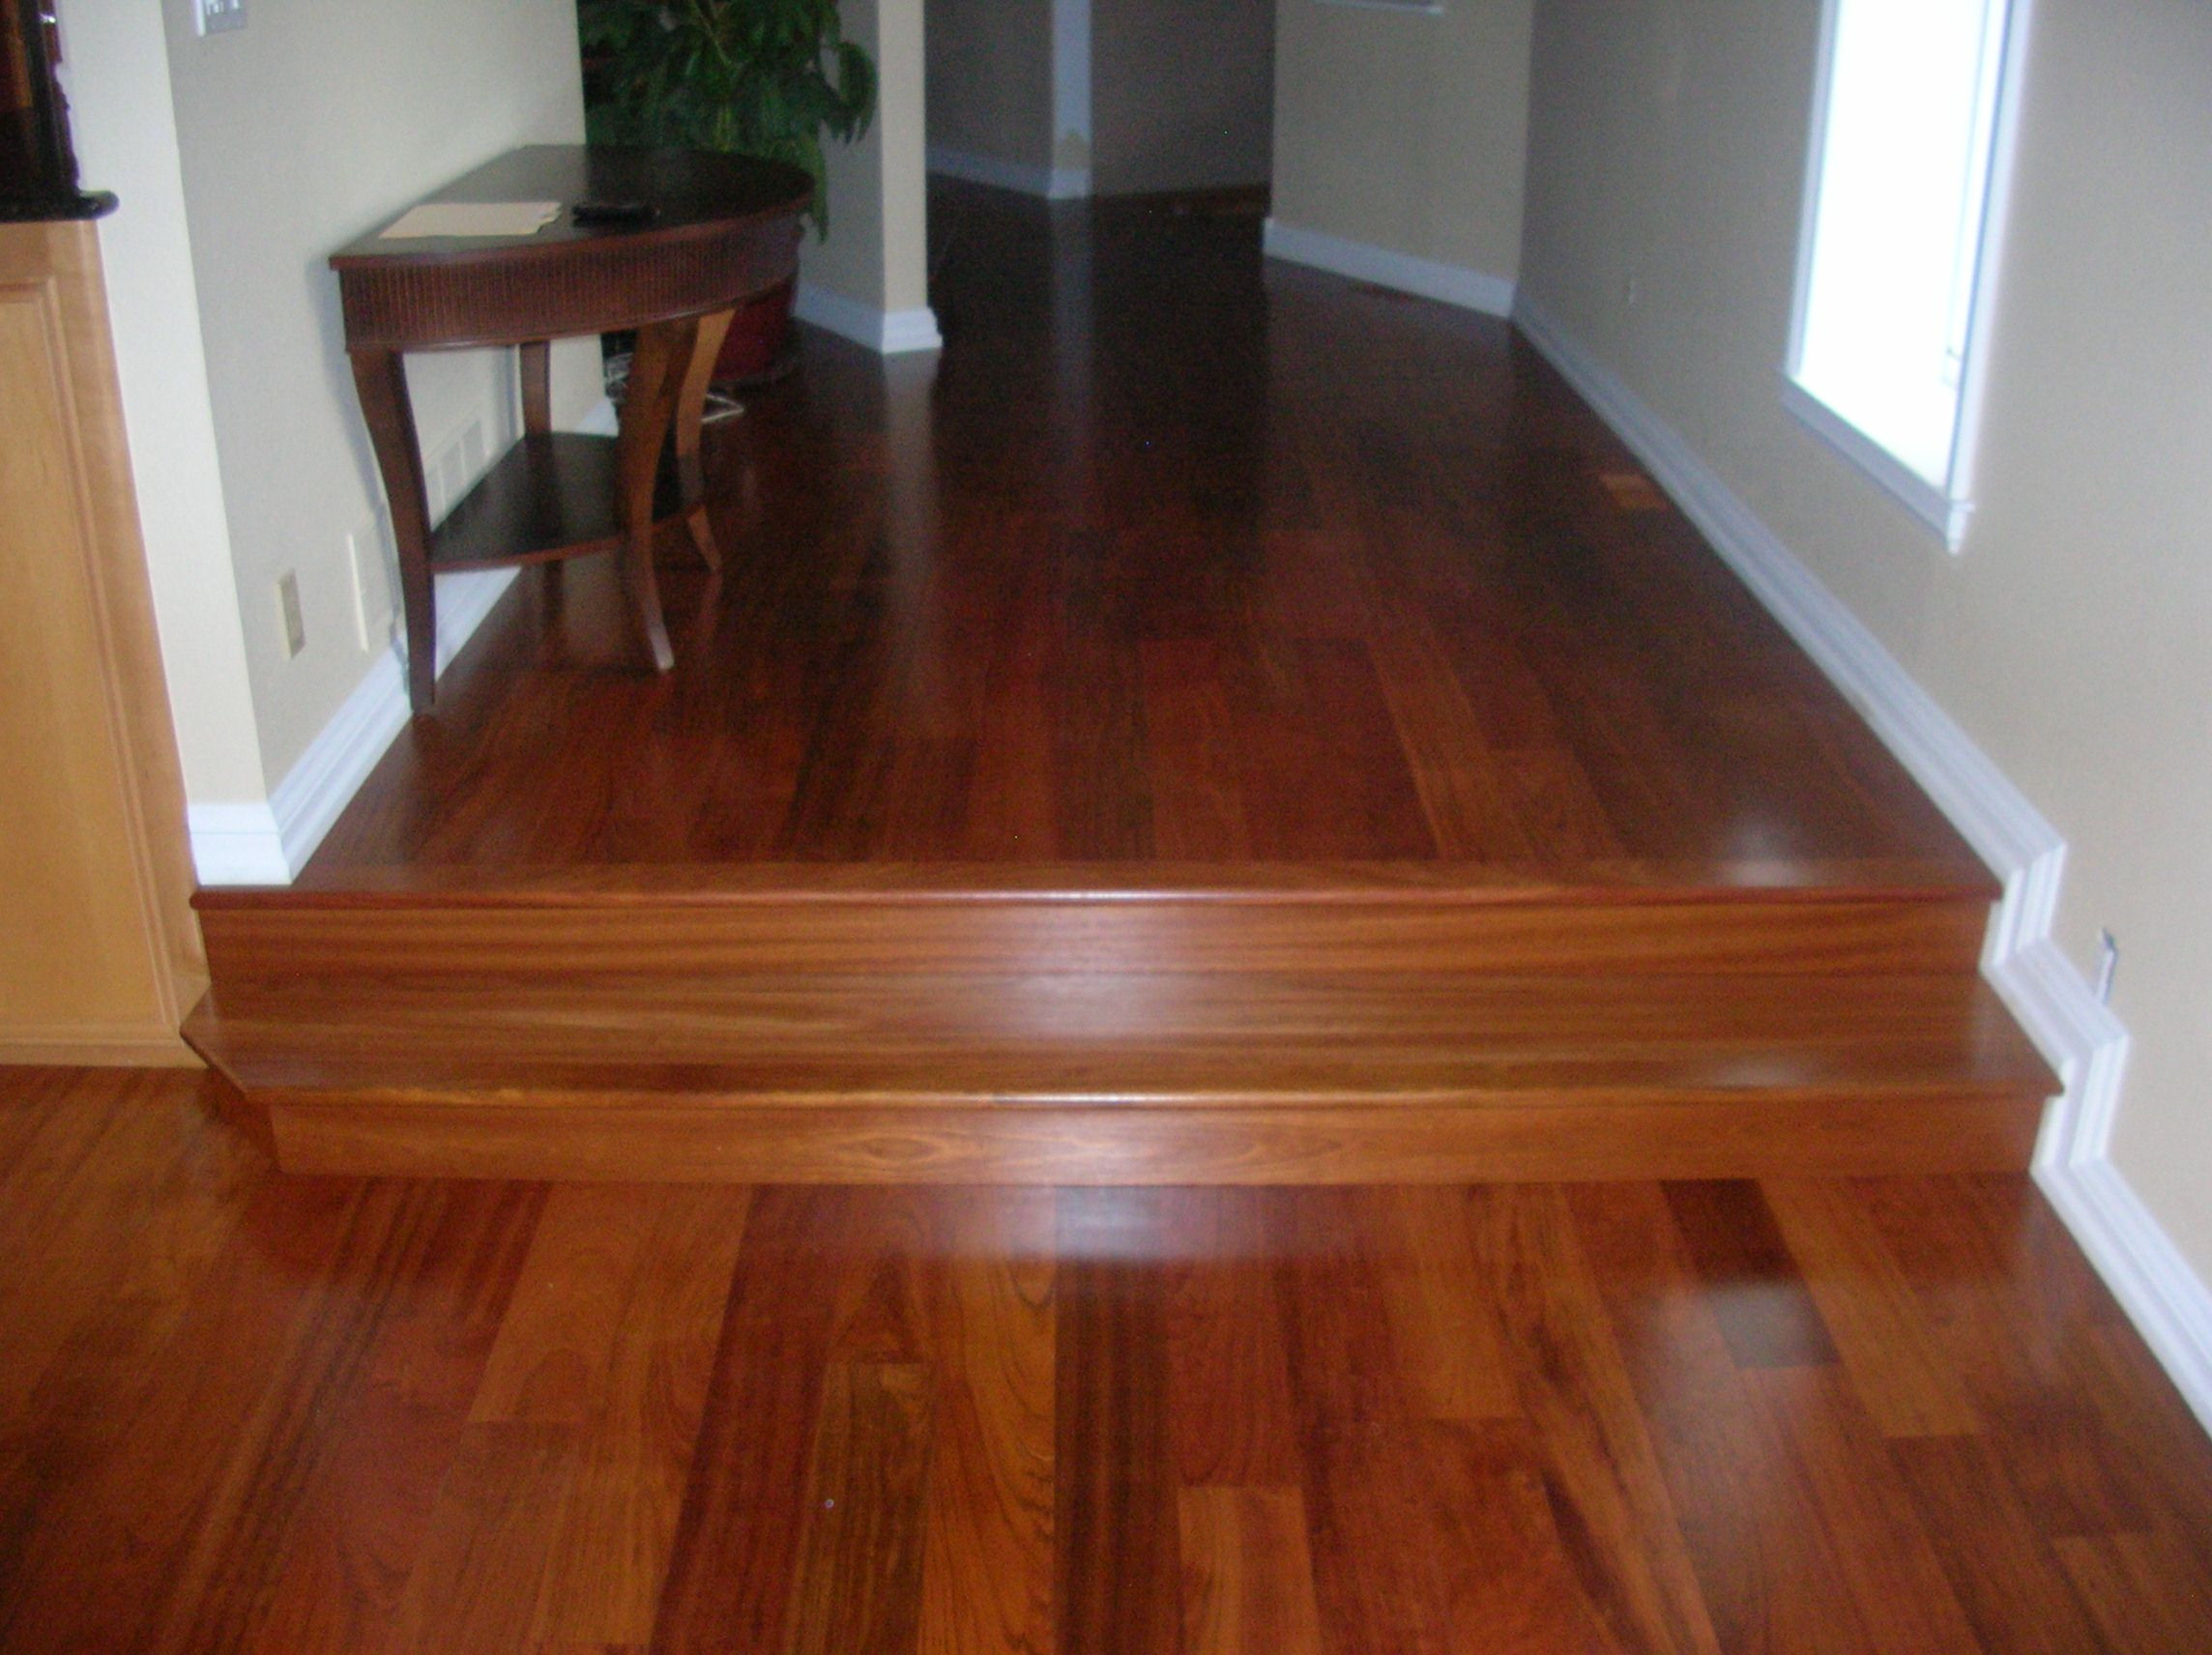 ch hardwood floors of ideal floorsno carpet other then area carpet brazilian cherry for ideal floorsno carpet other then area carpet brazilian cherry